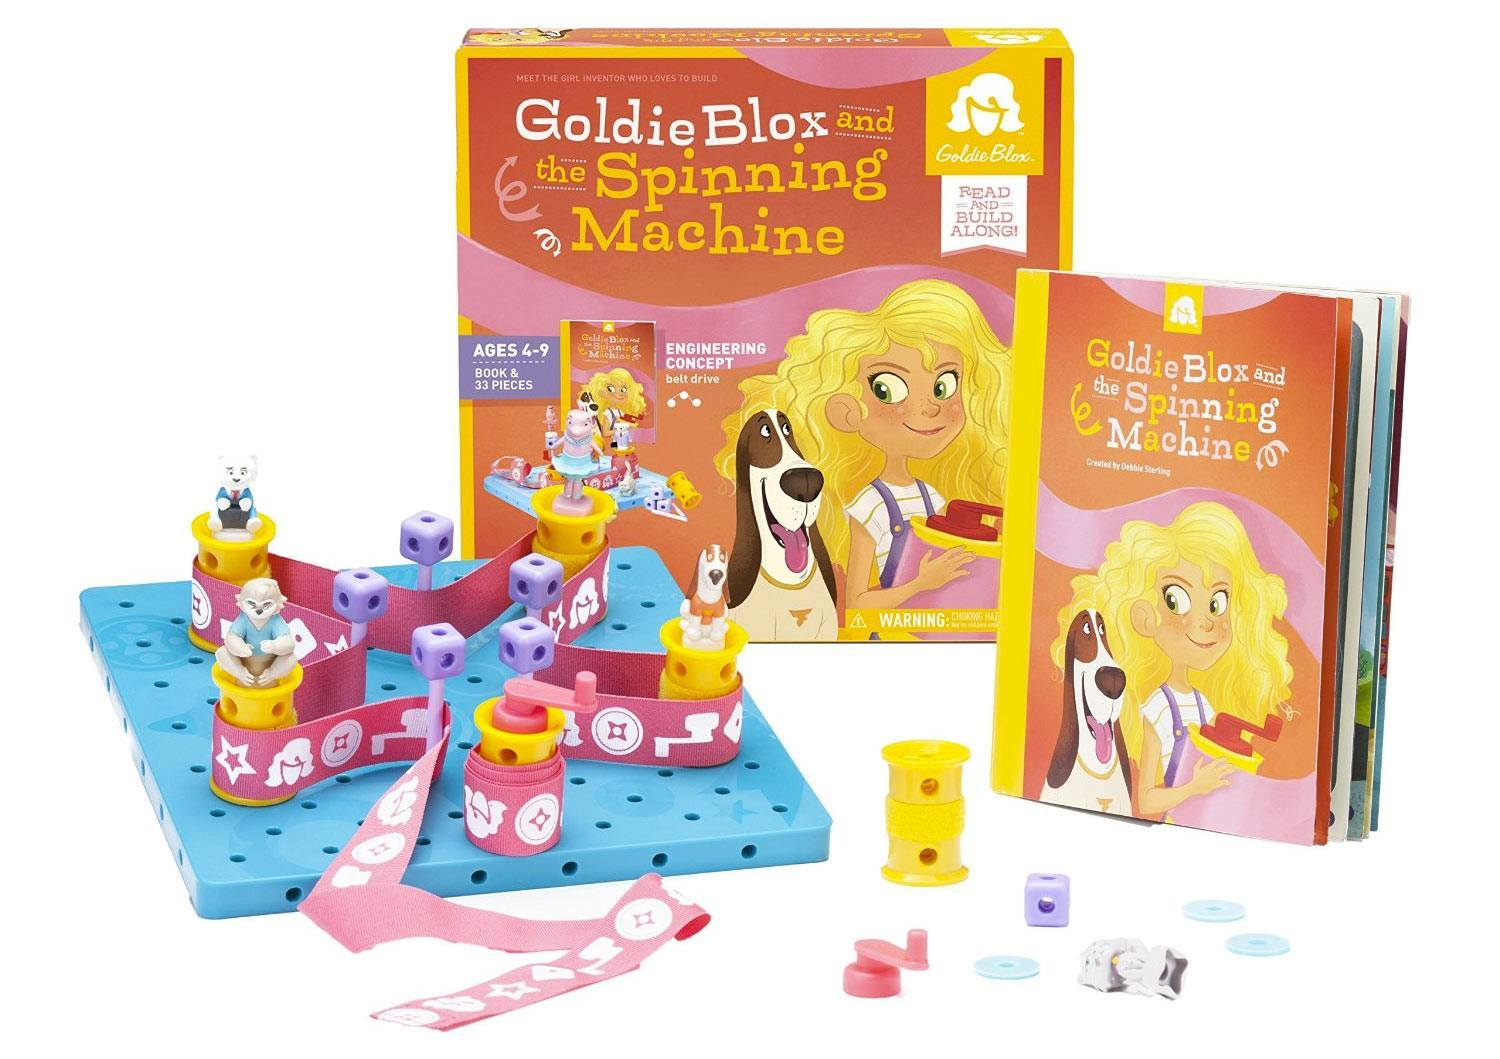 Goldie Blox and the Spinning Machine Game and Contents